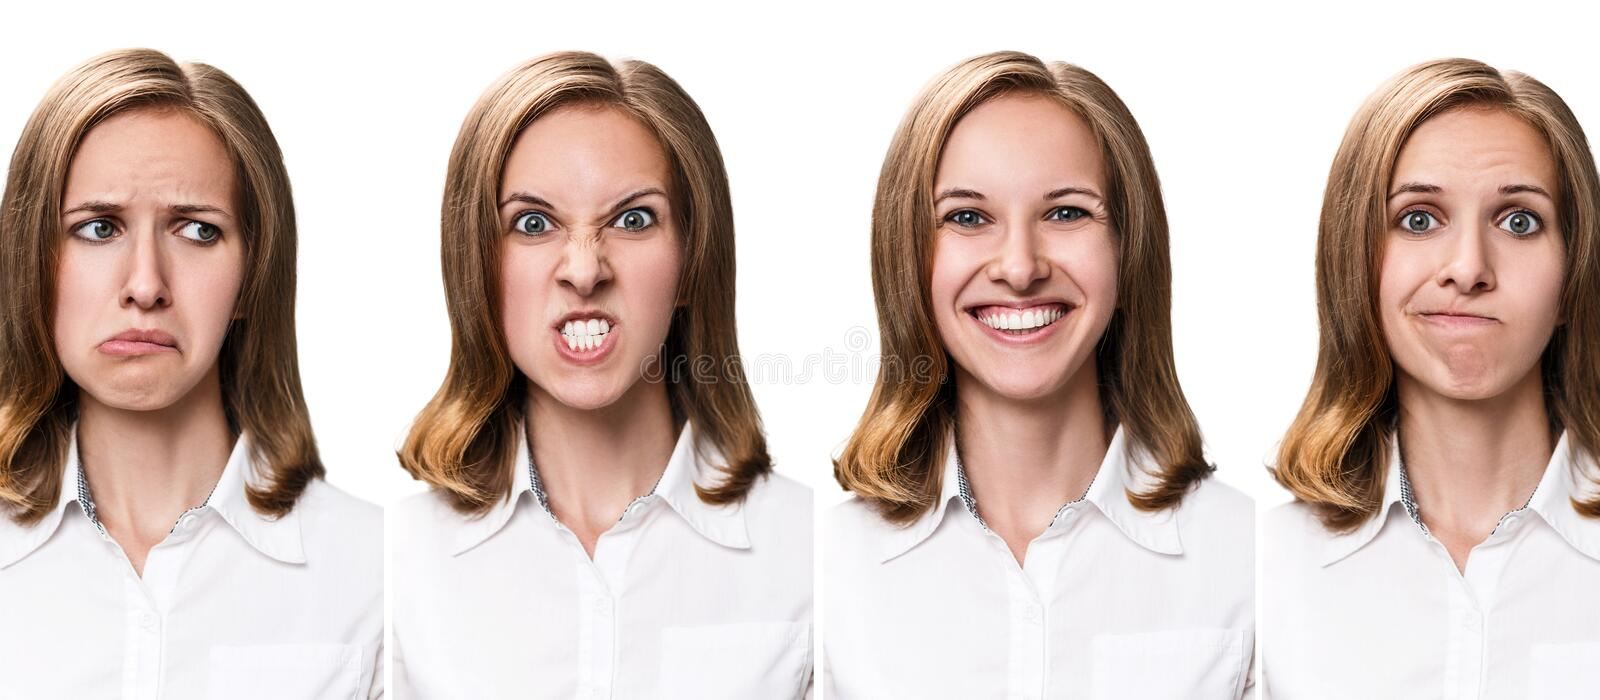 Young woman with different expressions stock images